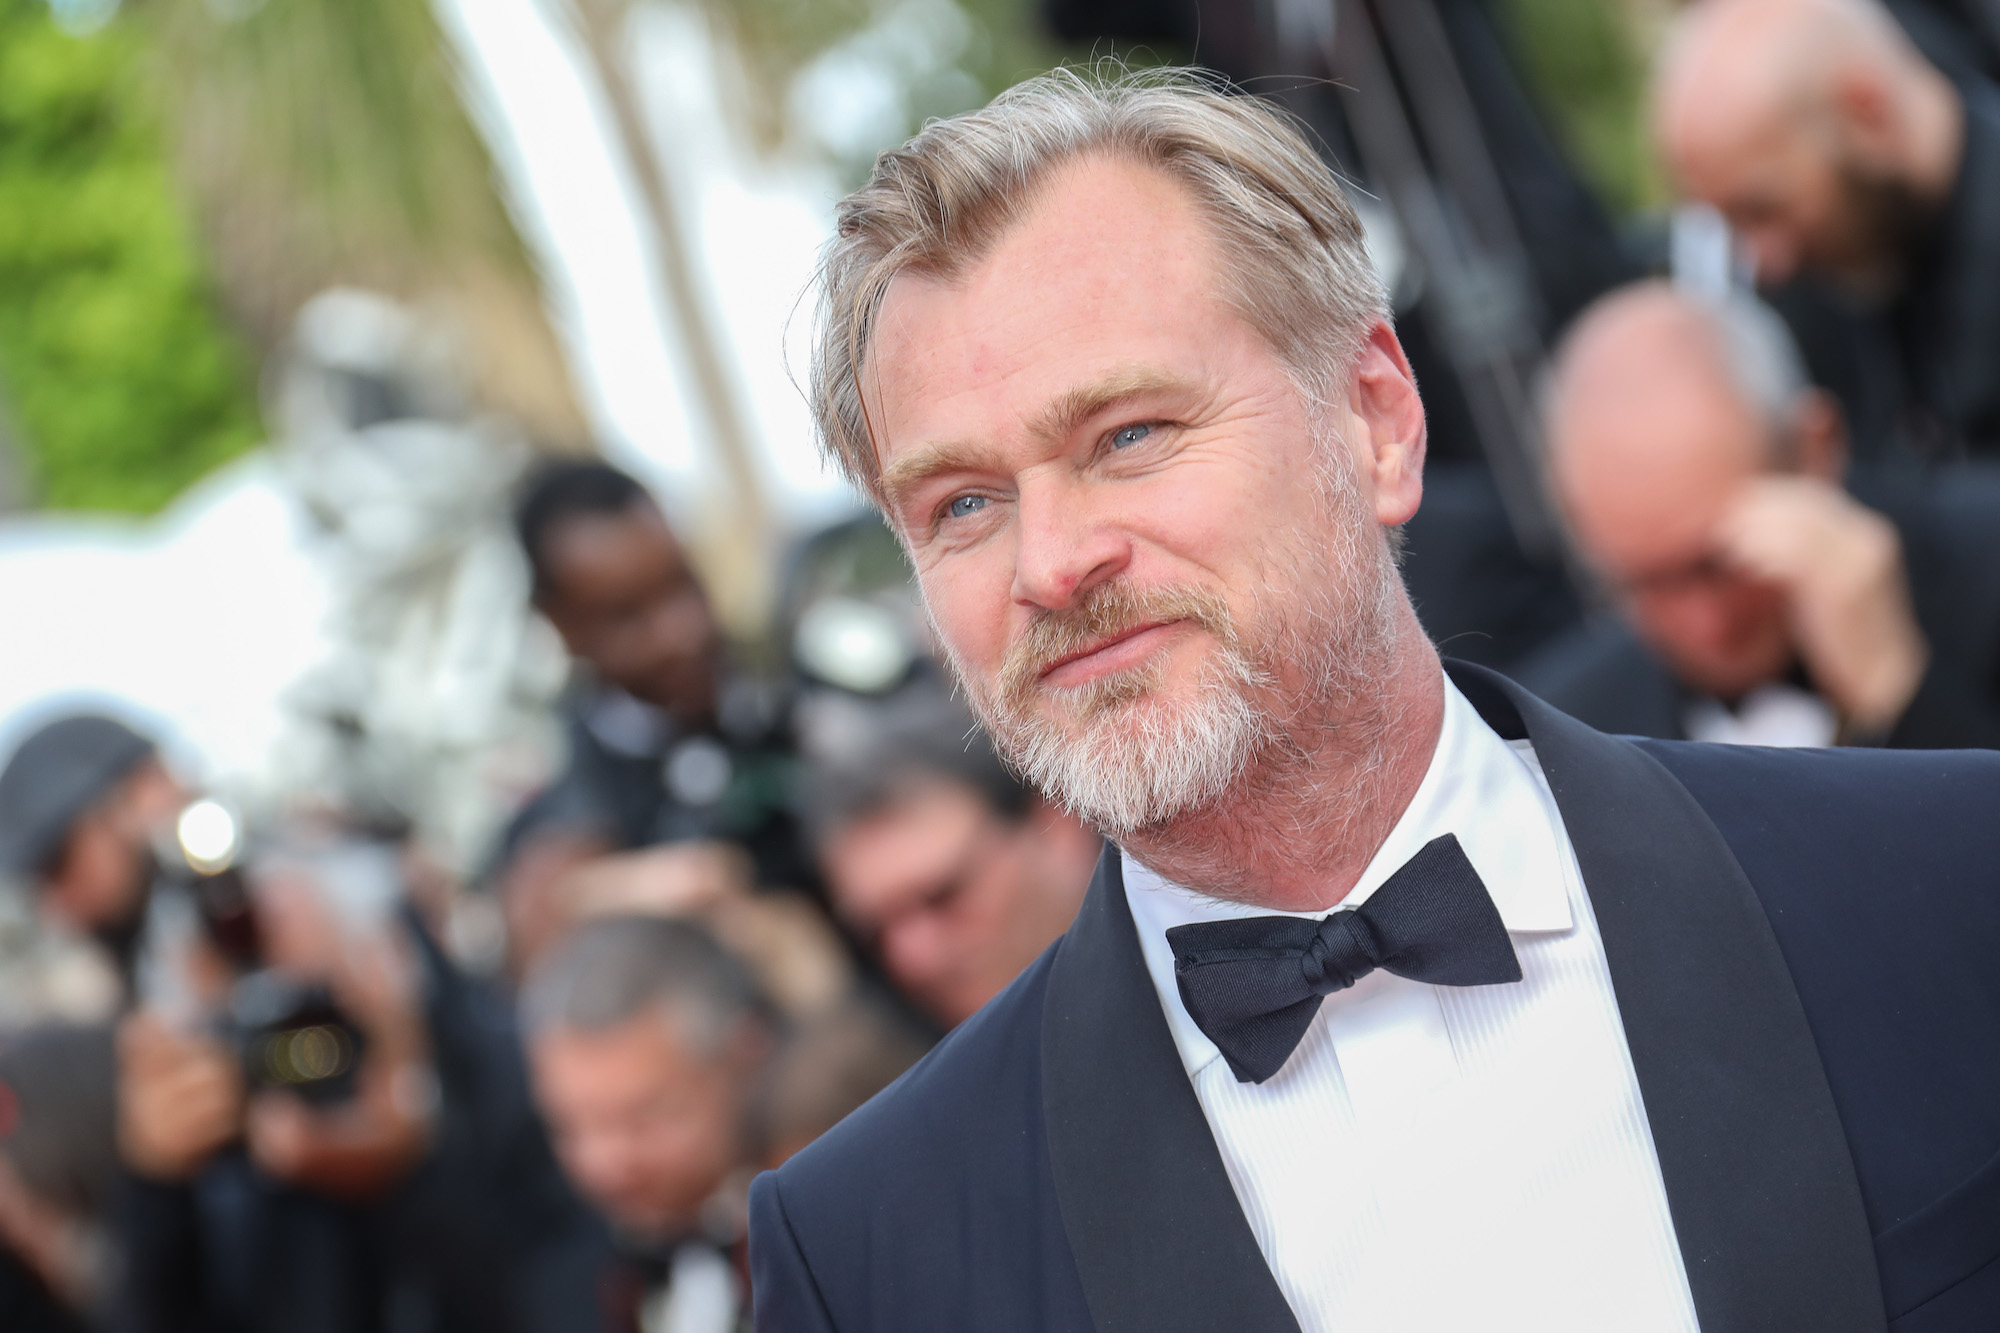 Christopher Nolan at the screening of 'Sink Or Swim (Le Grand Bain)' during the 71st annual Cannes Film Festival at Palais des Festivals on May 13, 2018